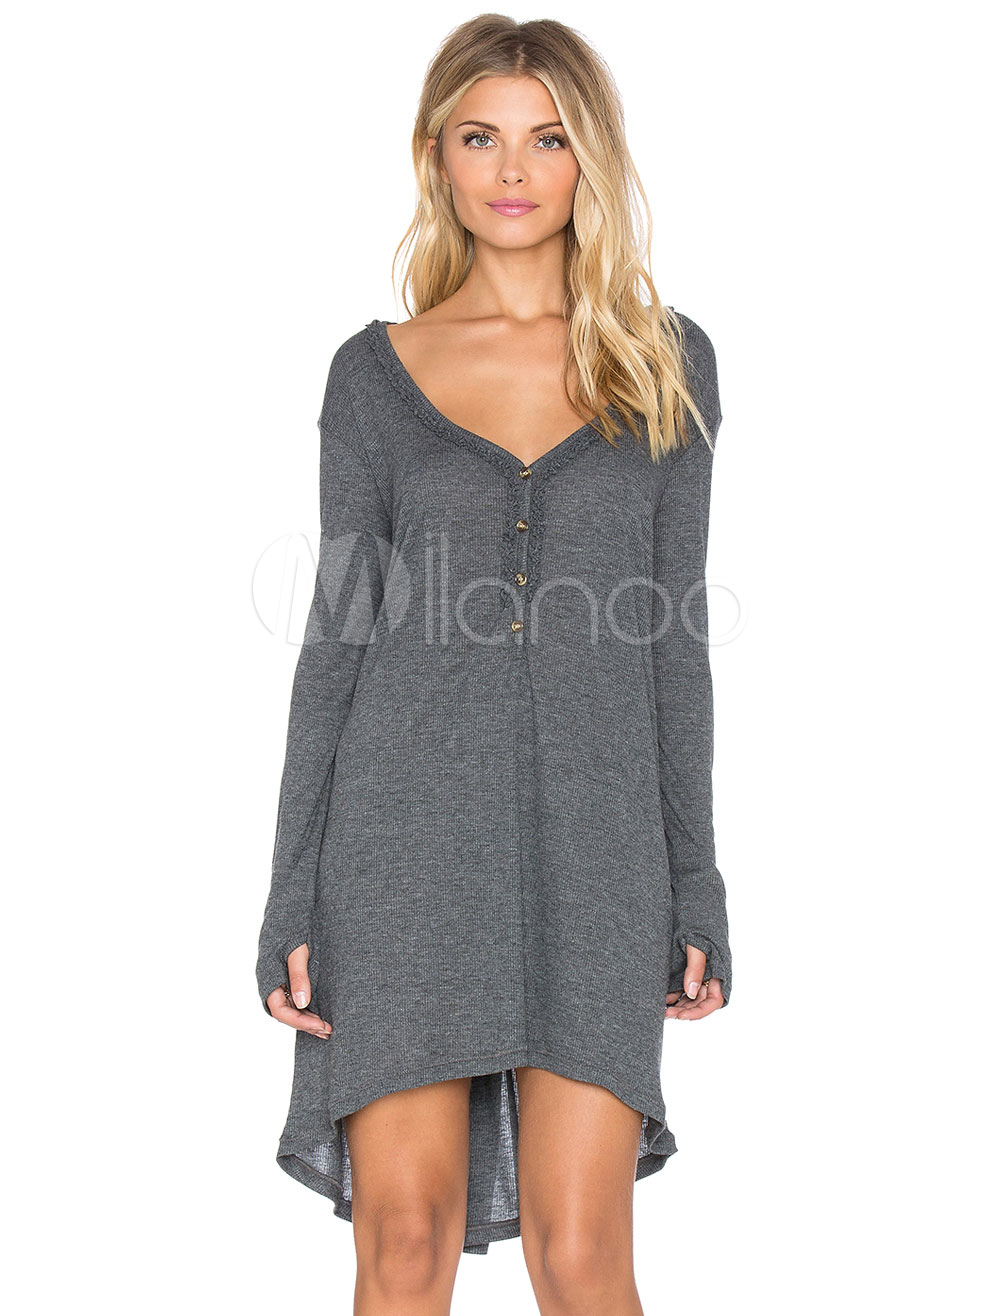 Buy Grey Women Dress V Neck Long Sleeve High Low Casual Dress for $26.99 in Milanoo store